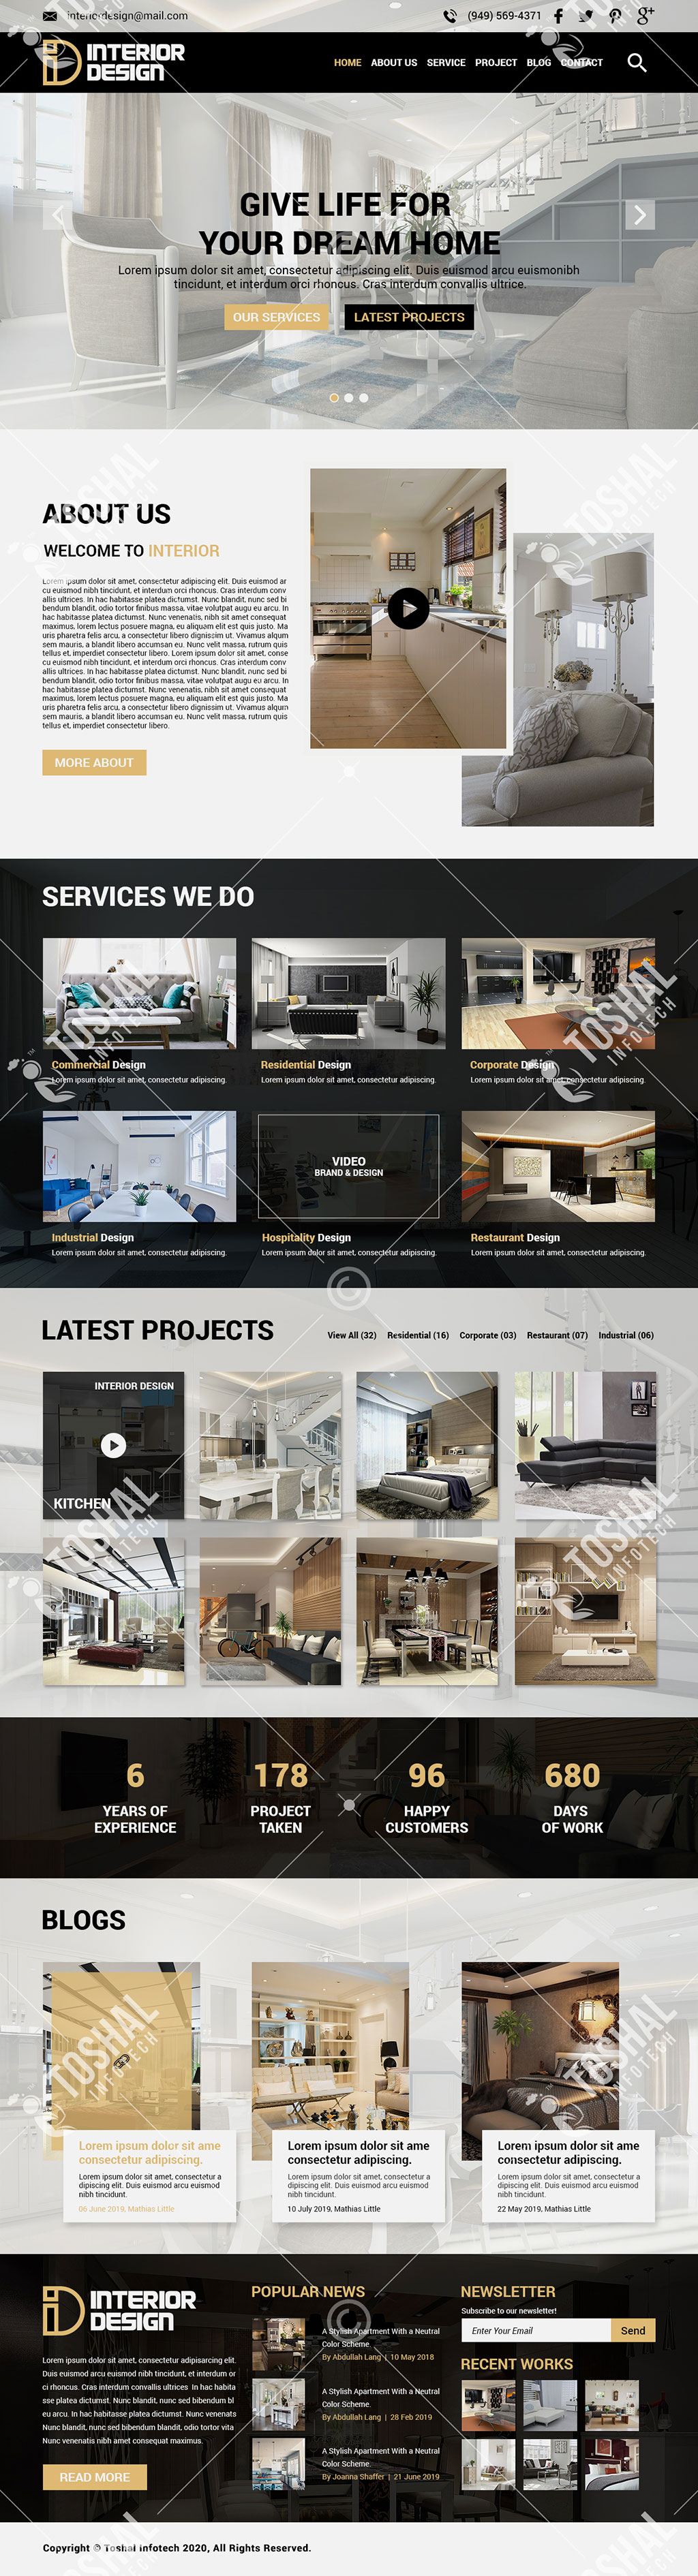 Interior Design Theme